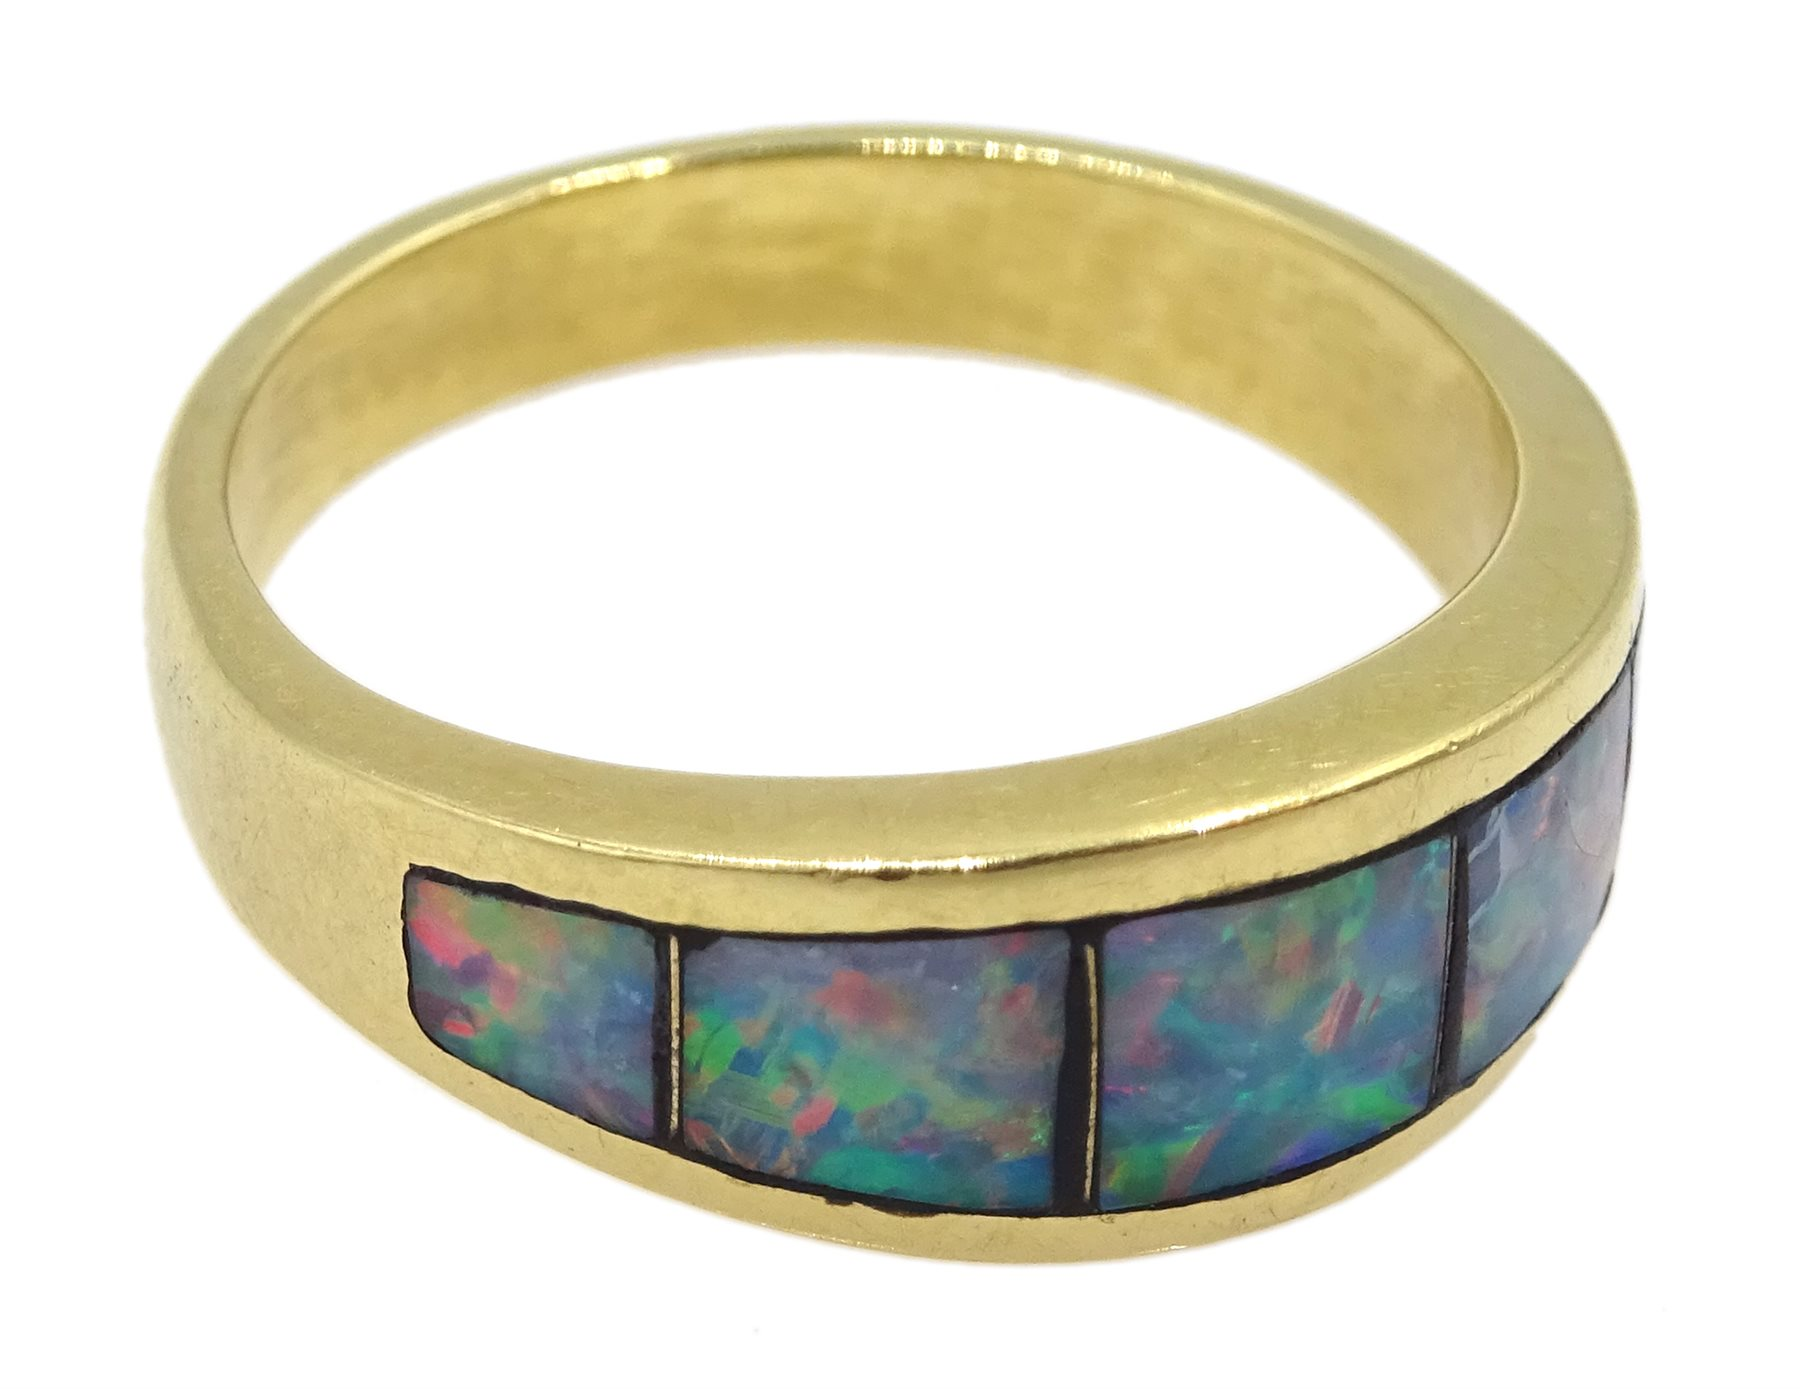 18ct gold opal ring rubbover set, stamped 750 - Image 2 of 4